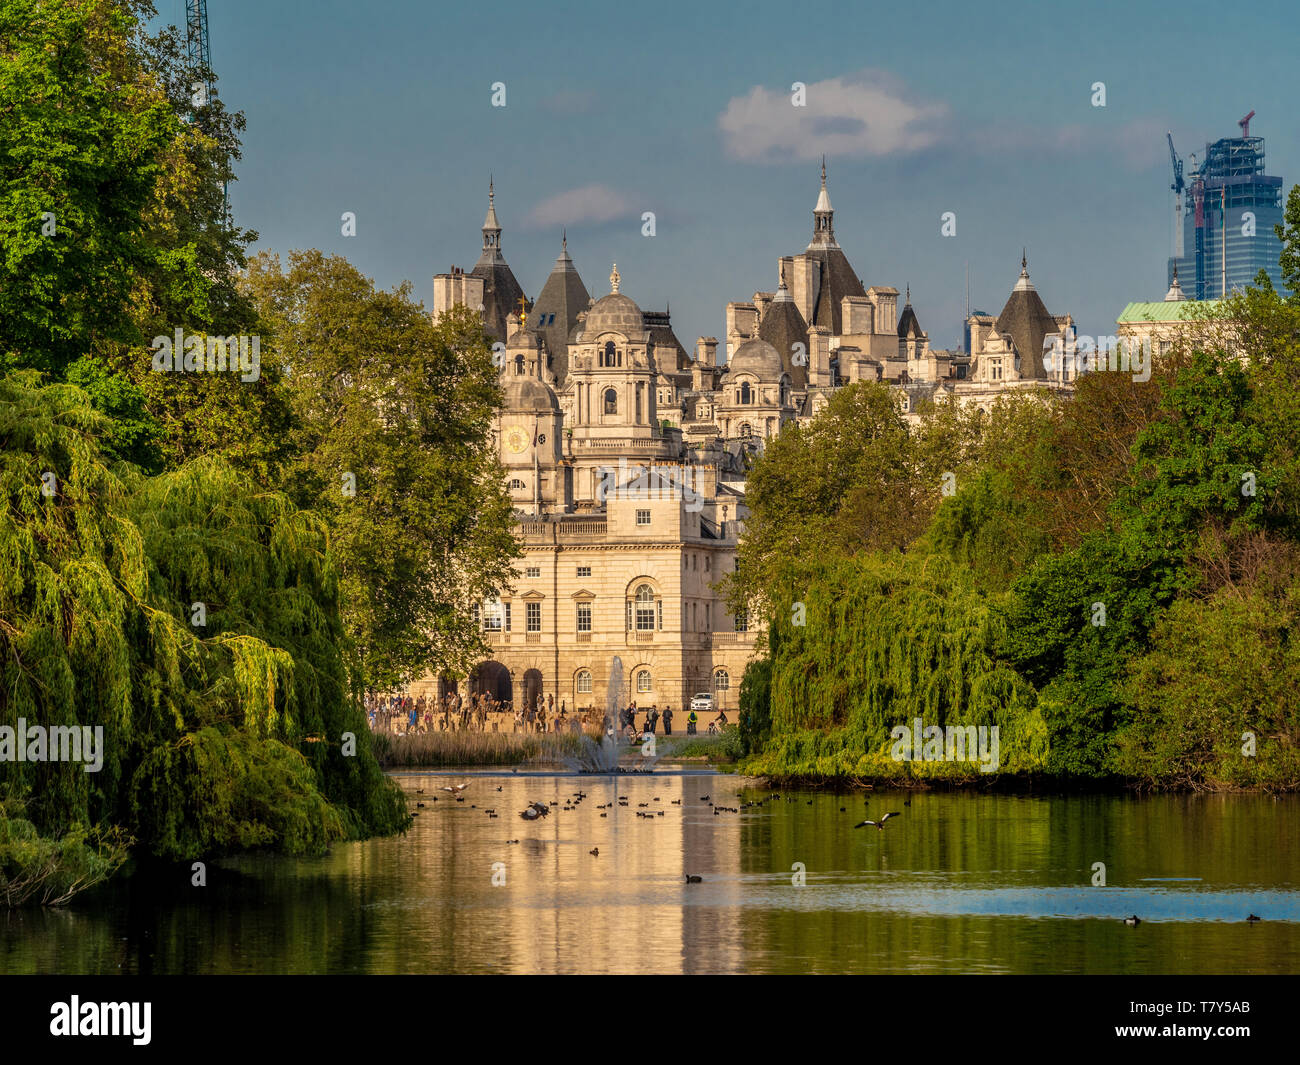 View across St James Park Lake towards Horse Guard and Whitehall, London, UK. - Stock Image